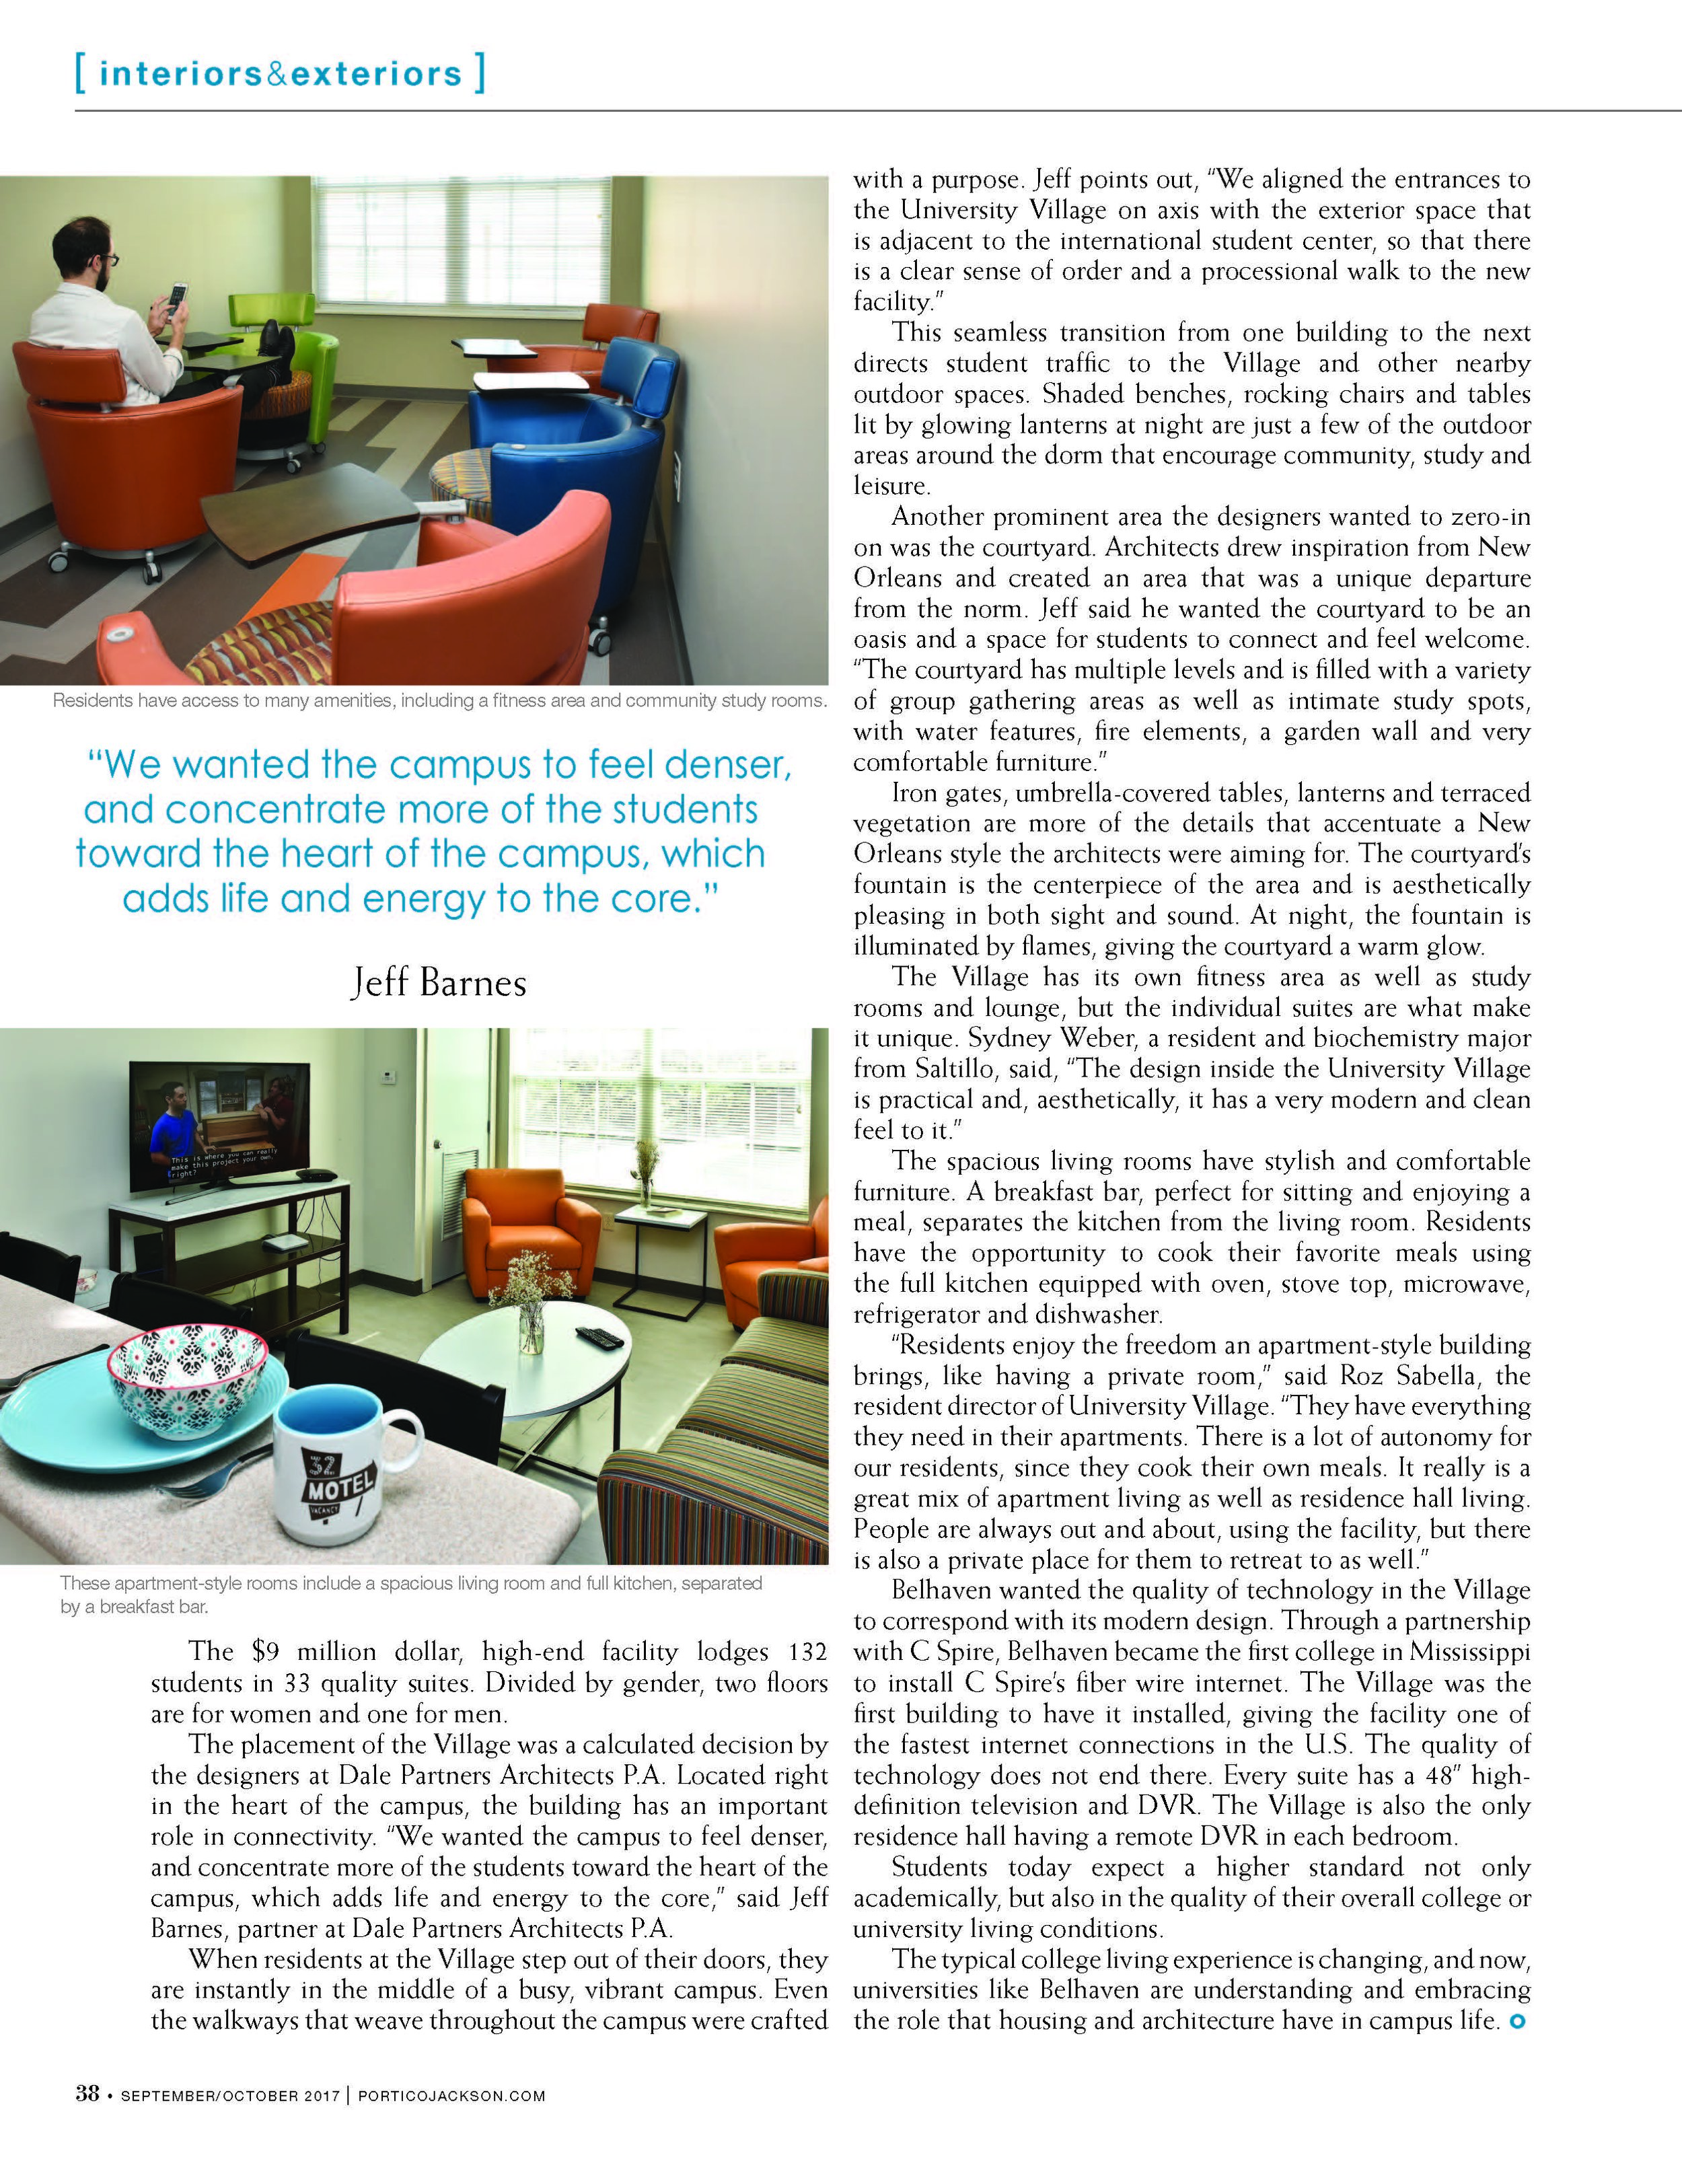 Portico article on University Village 3.jpg